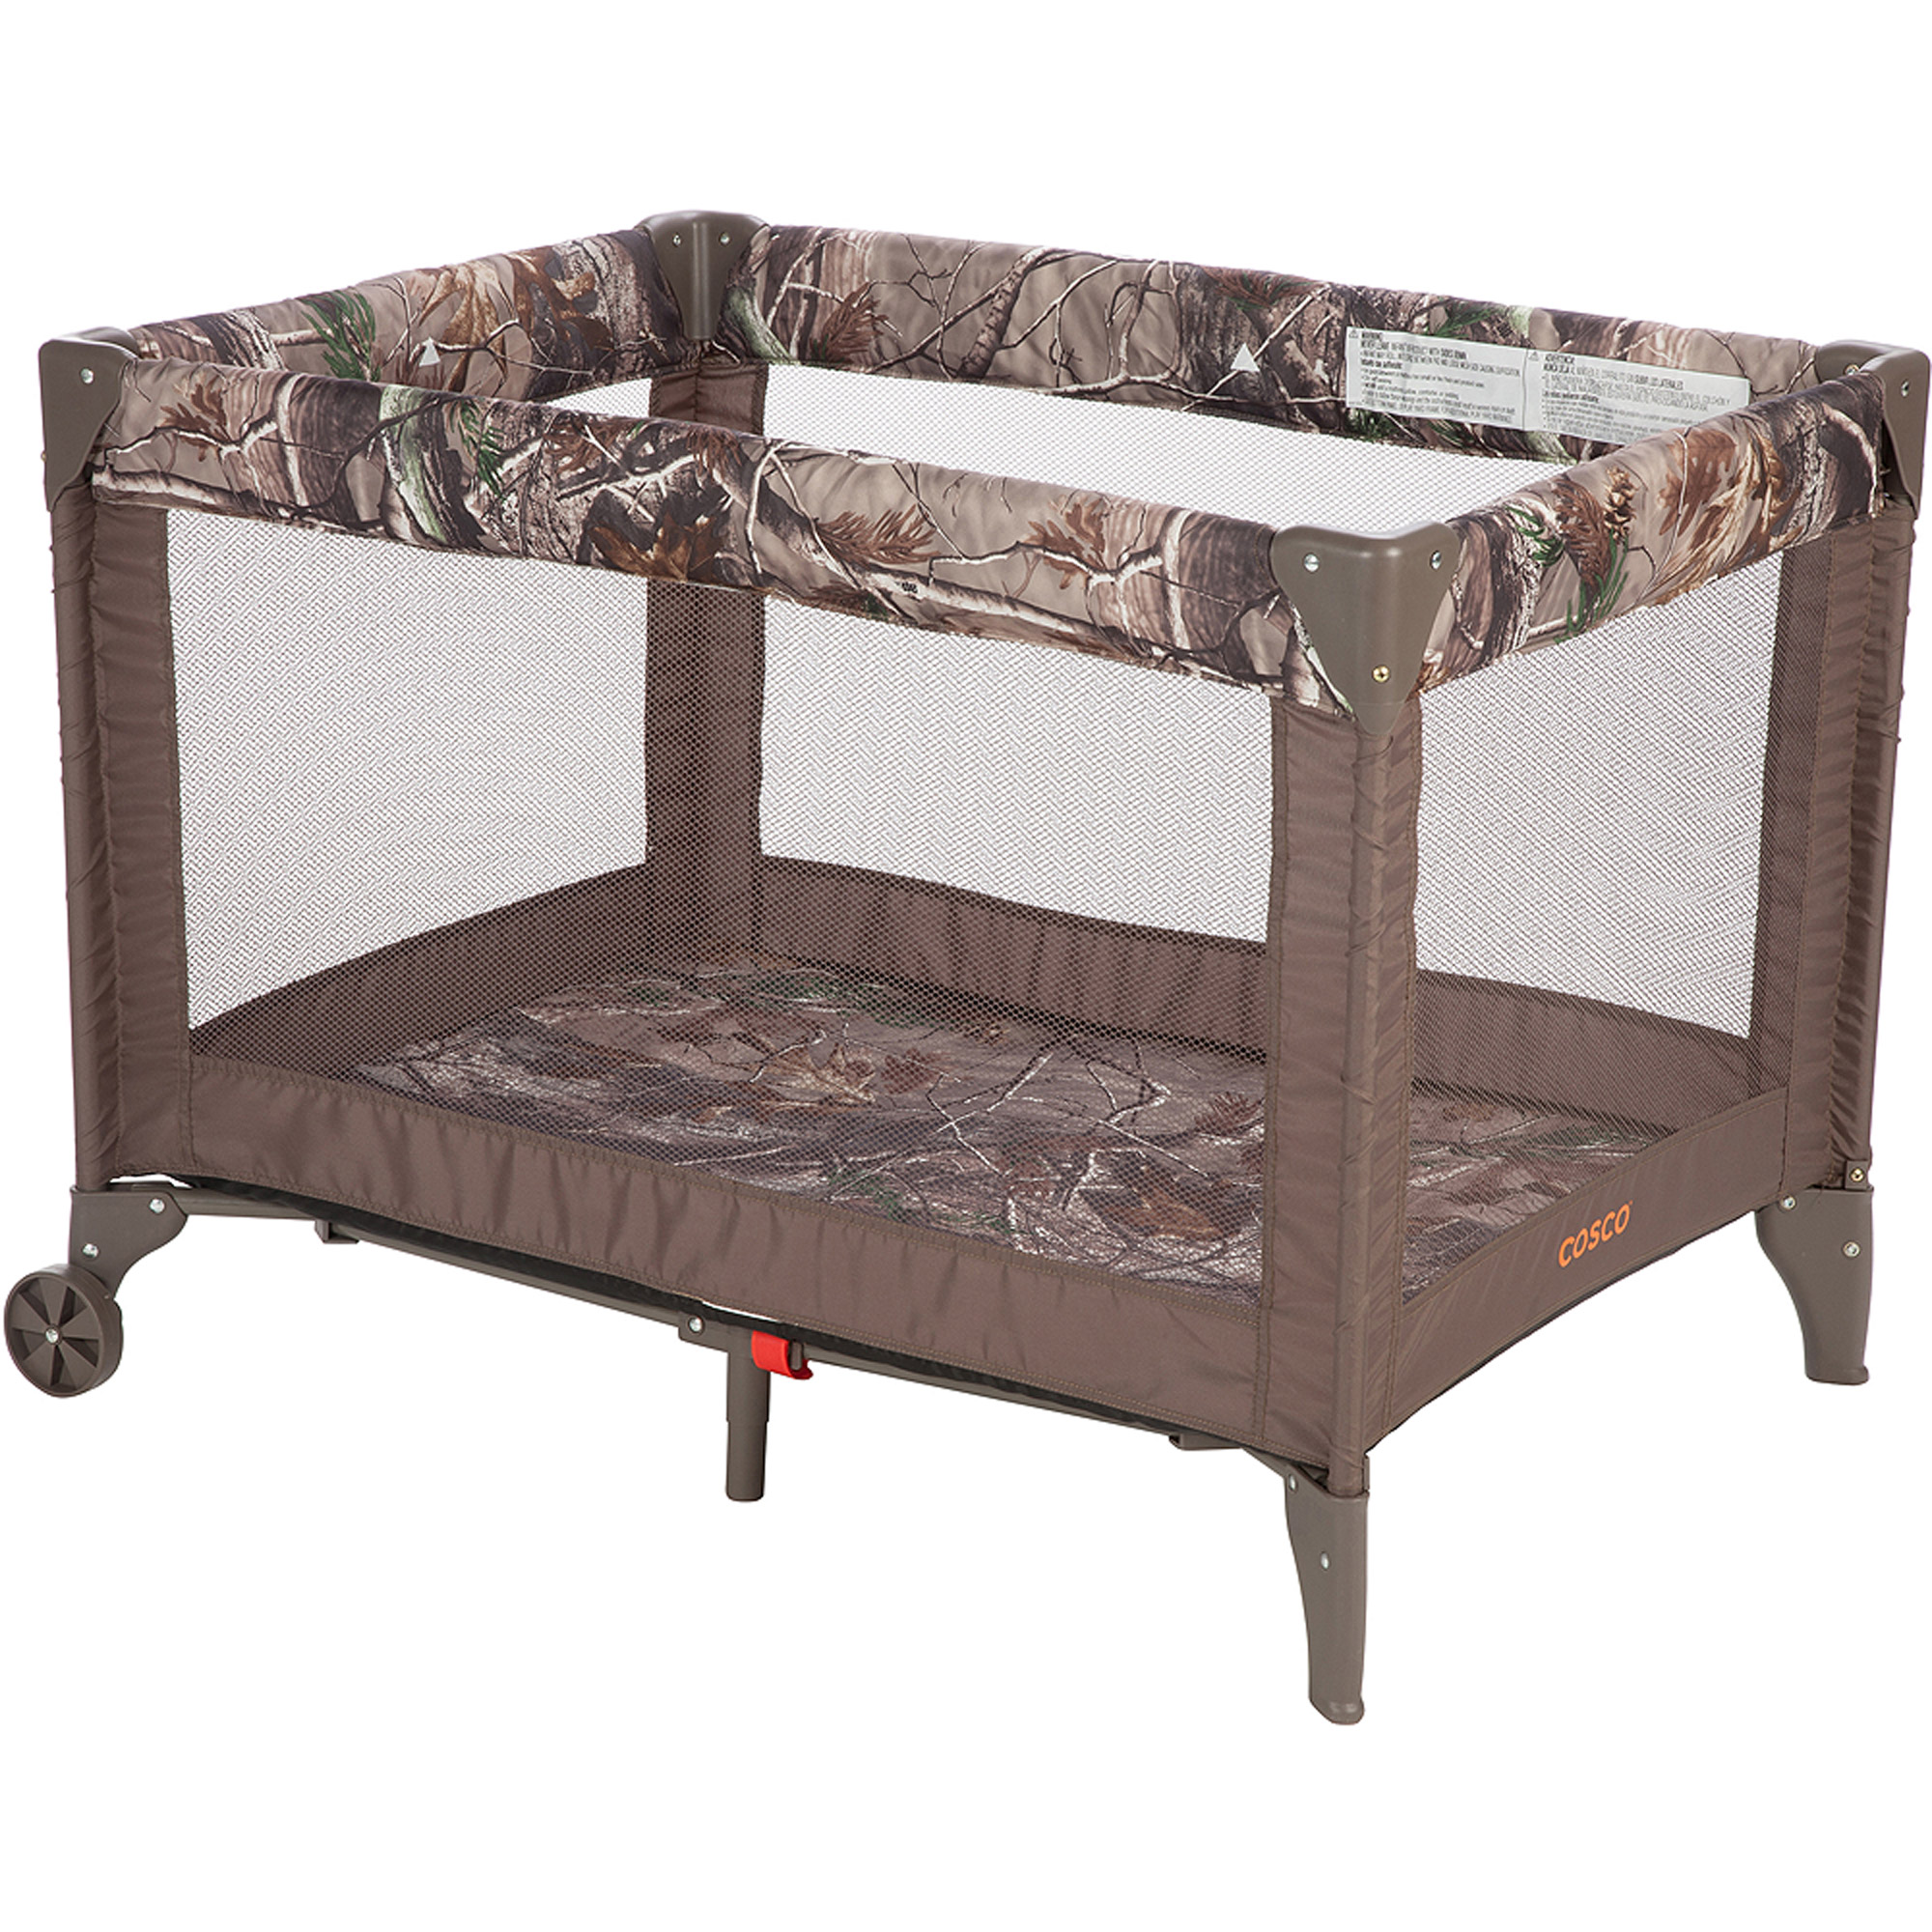 Cosco Funsport Playard, Realtree/Orange